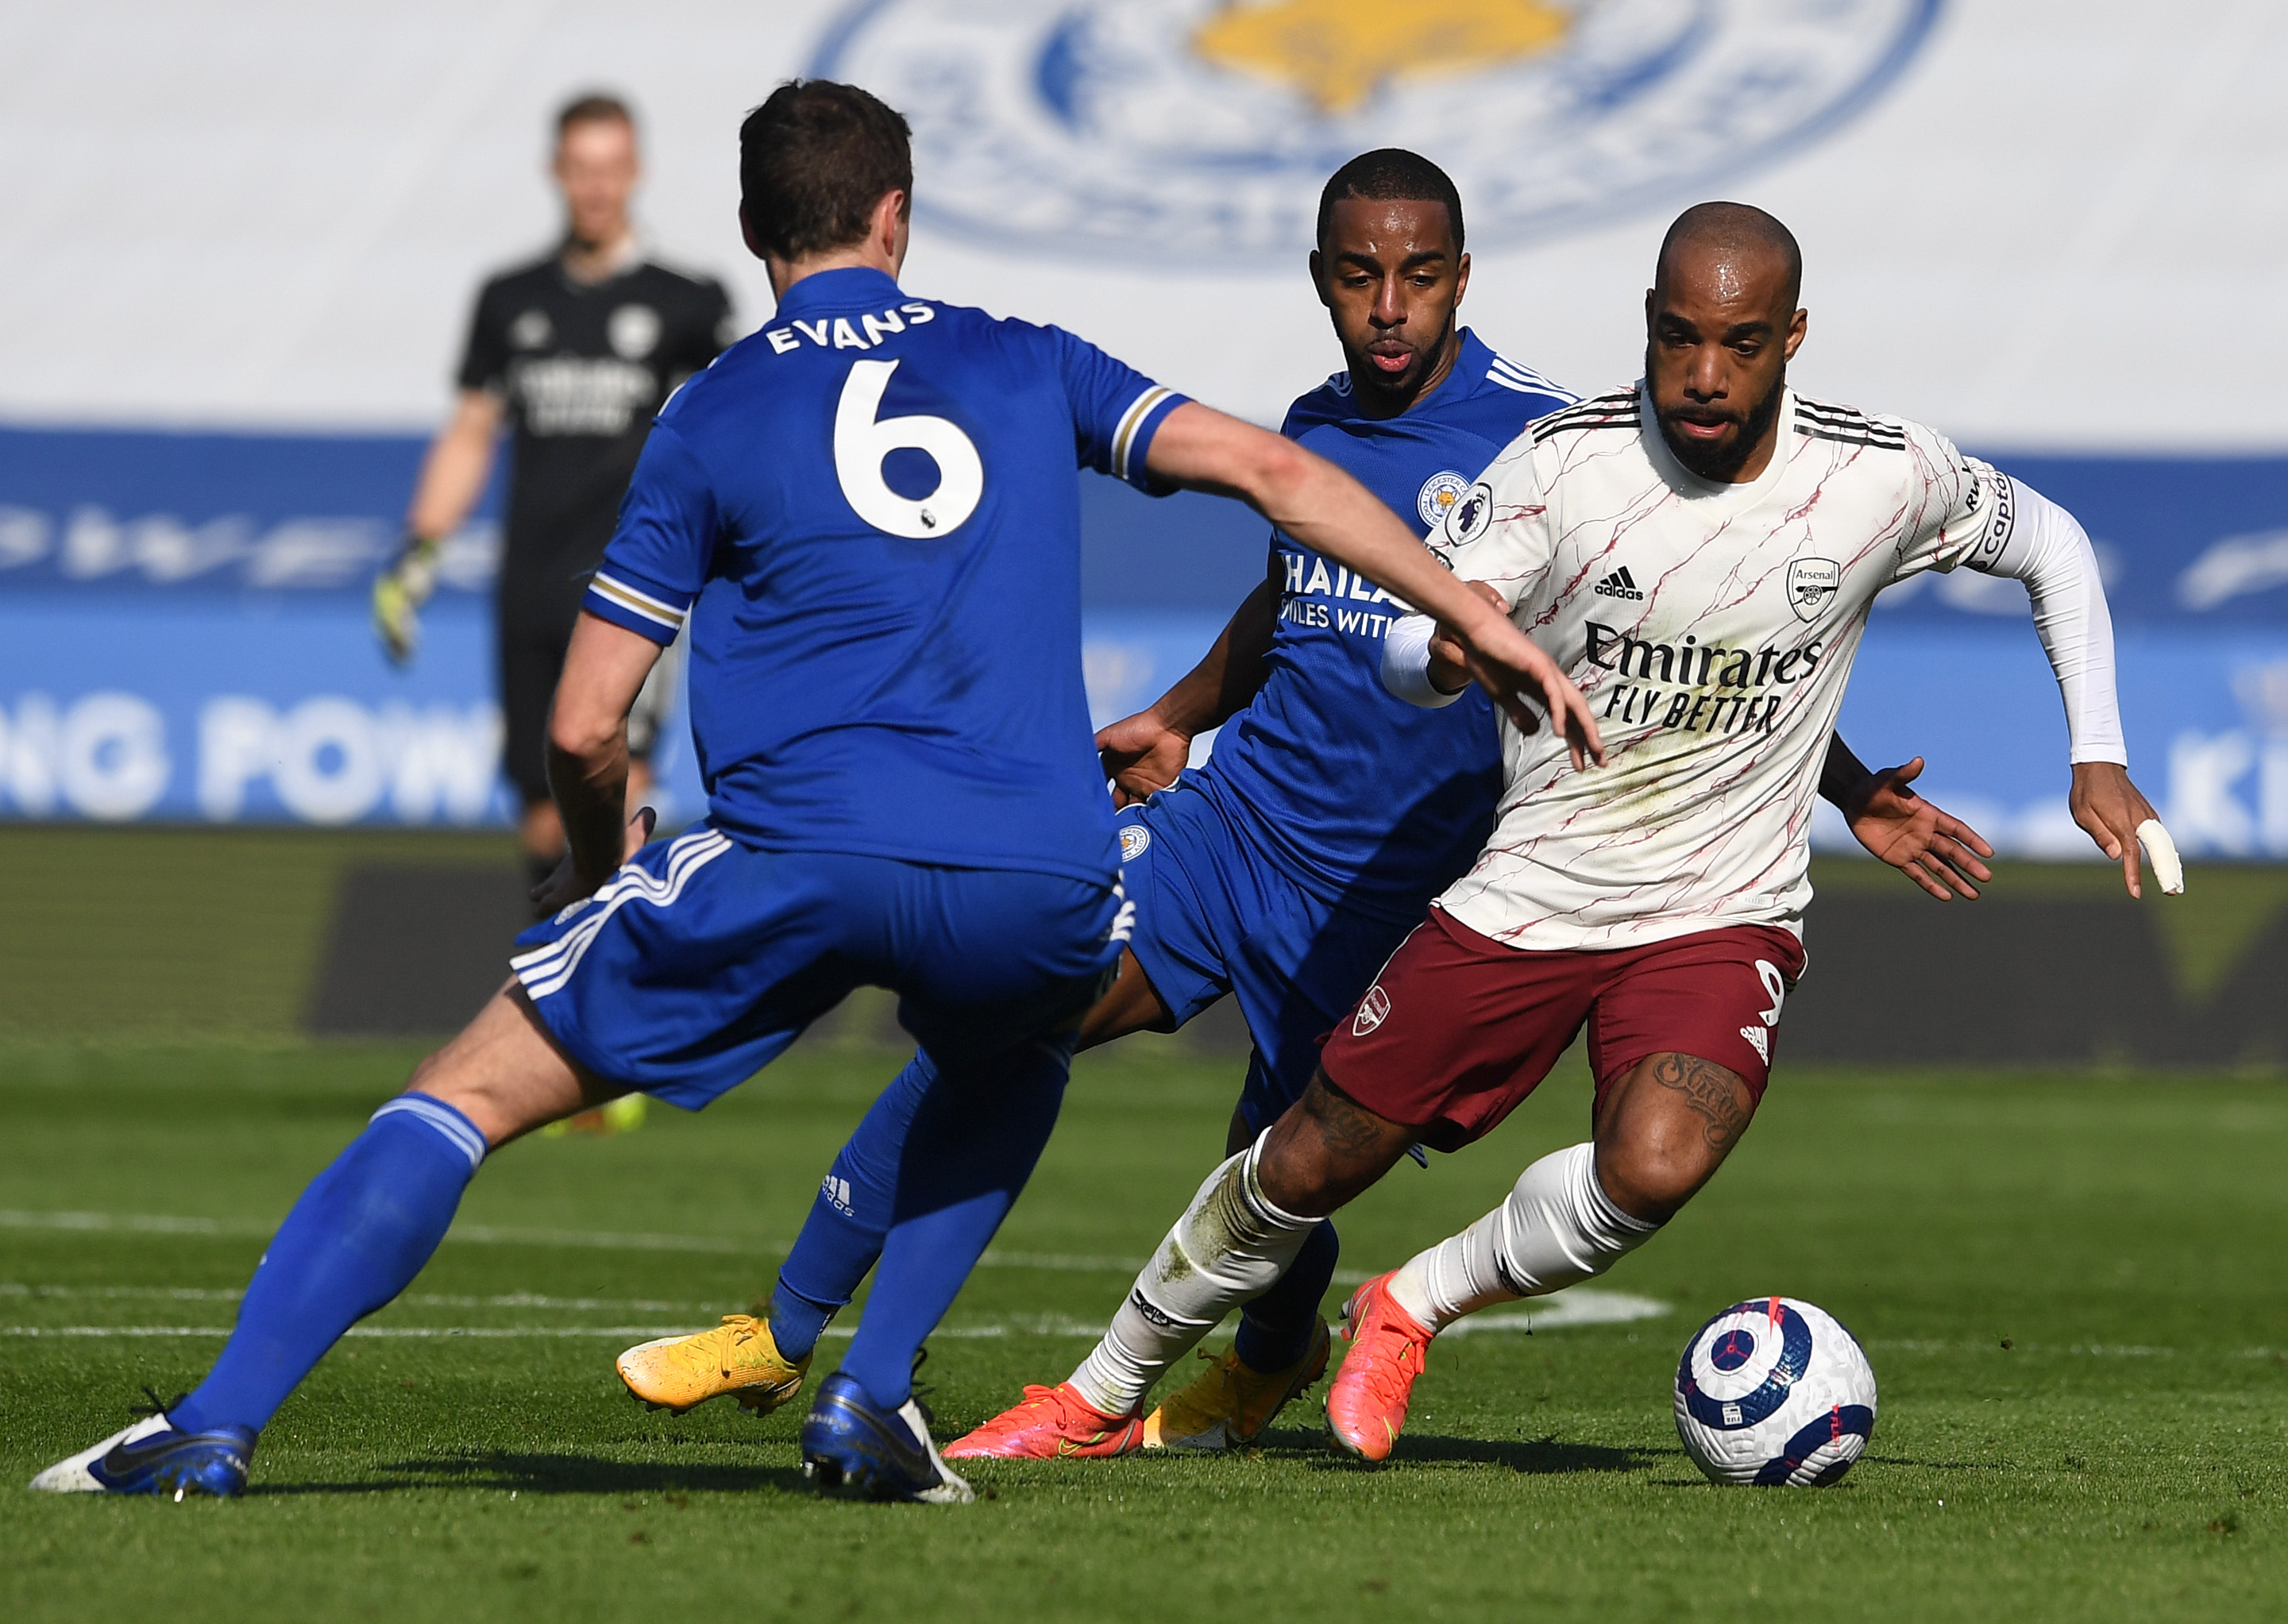 Alex Lacazette takes on two players